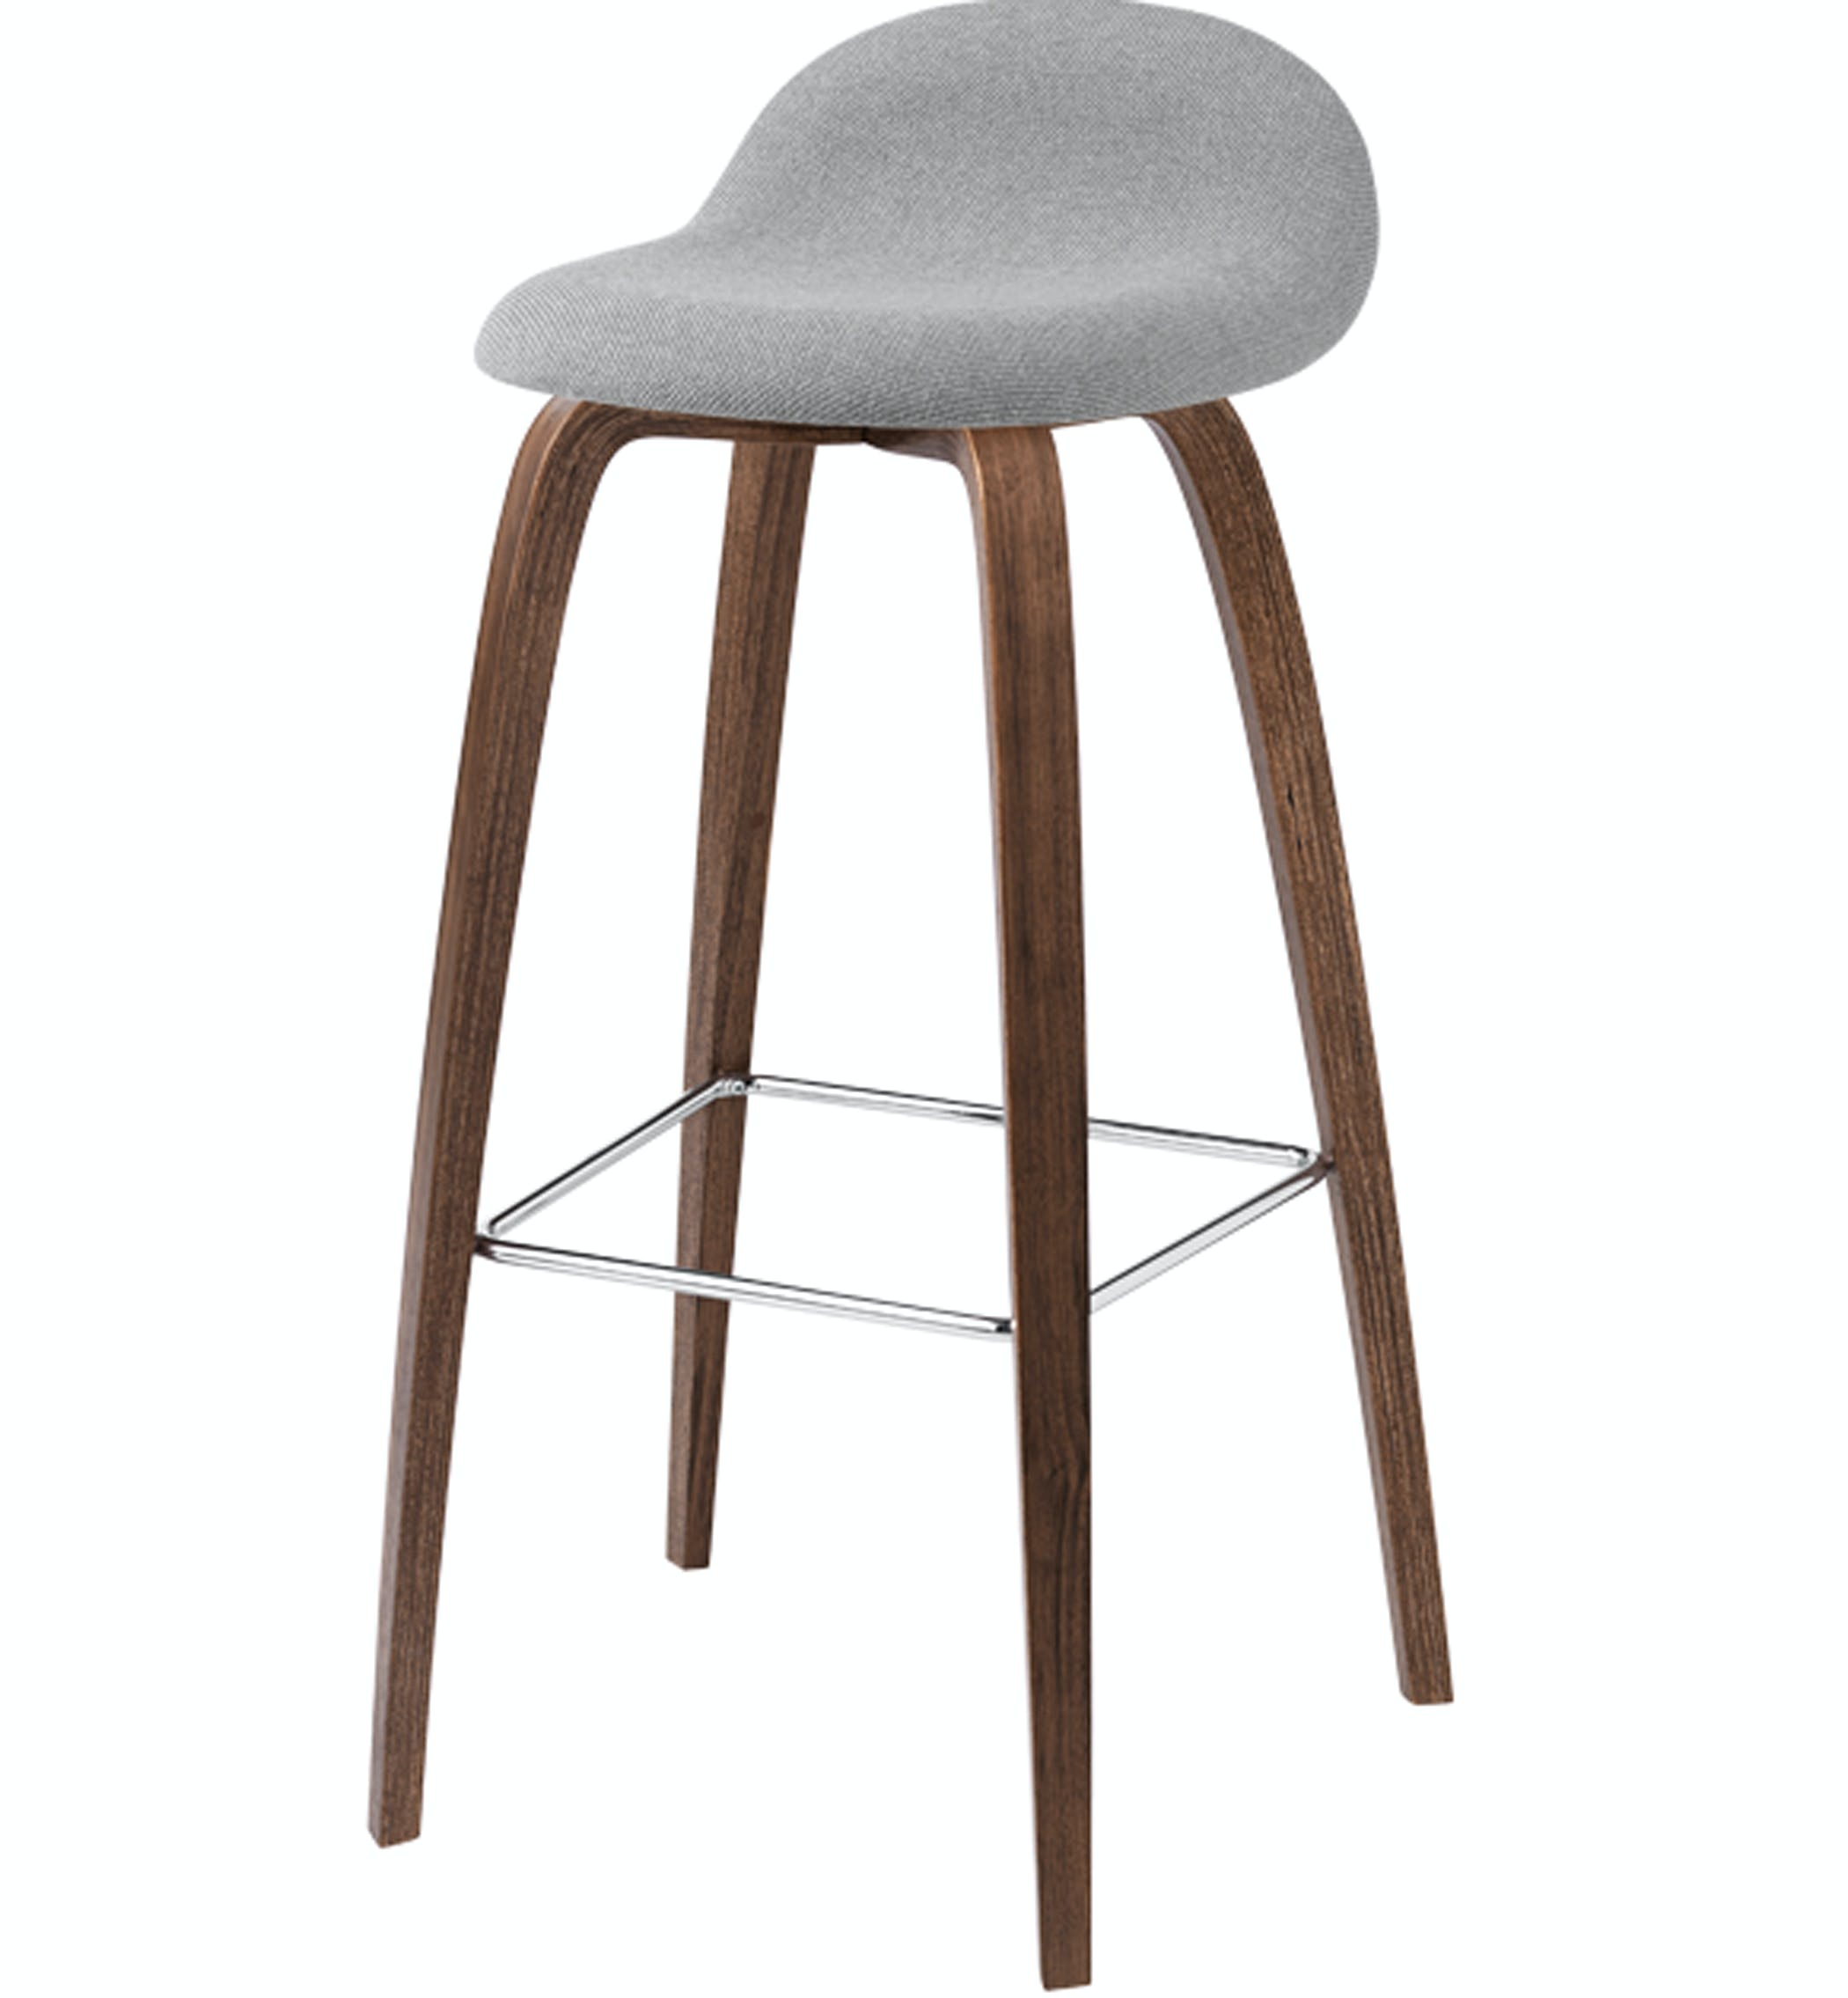 Gubi Chair Stool Fully Upholsted Grey Walnut Base Front Product